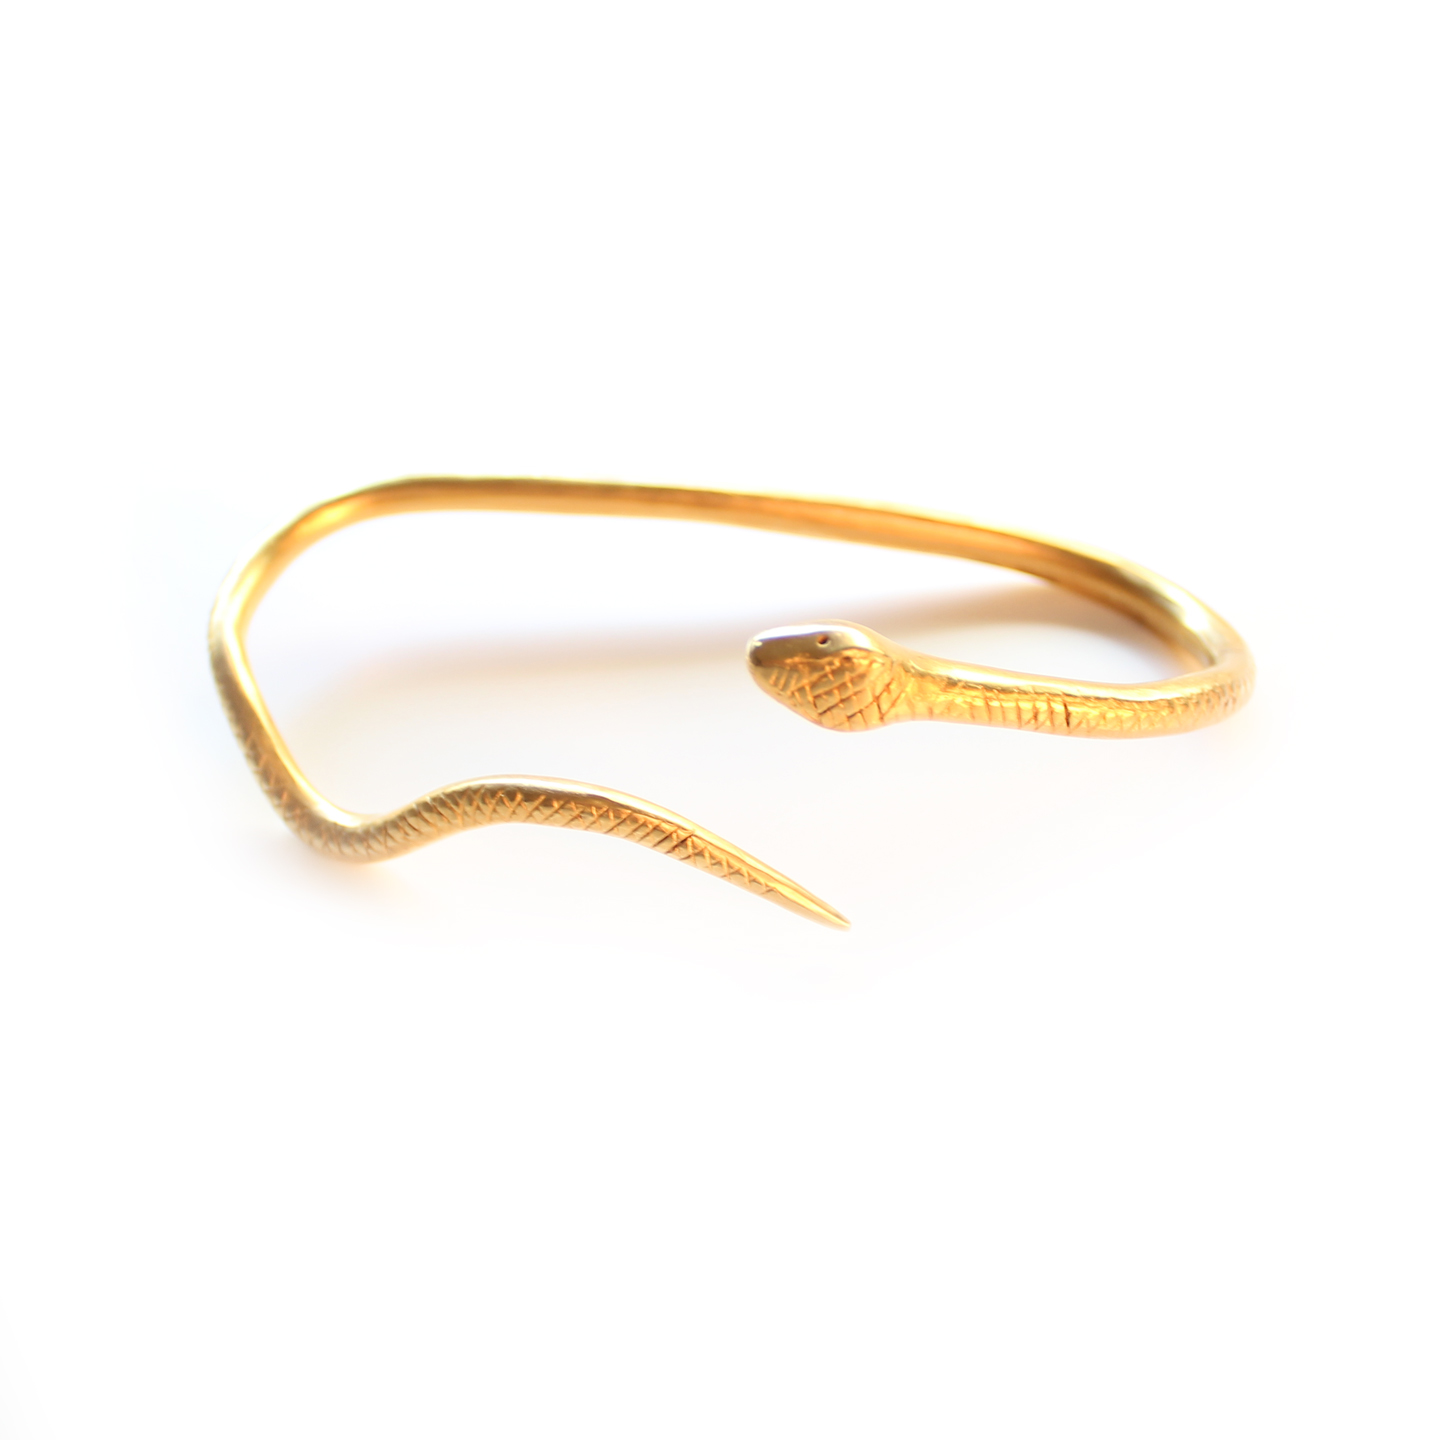 Gold snake hand wrap from meg biram shop on storenvy